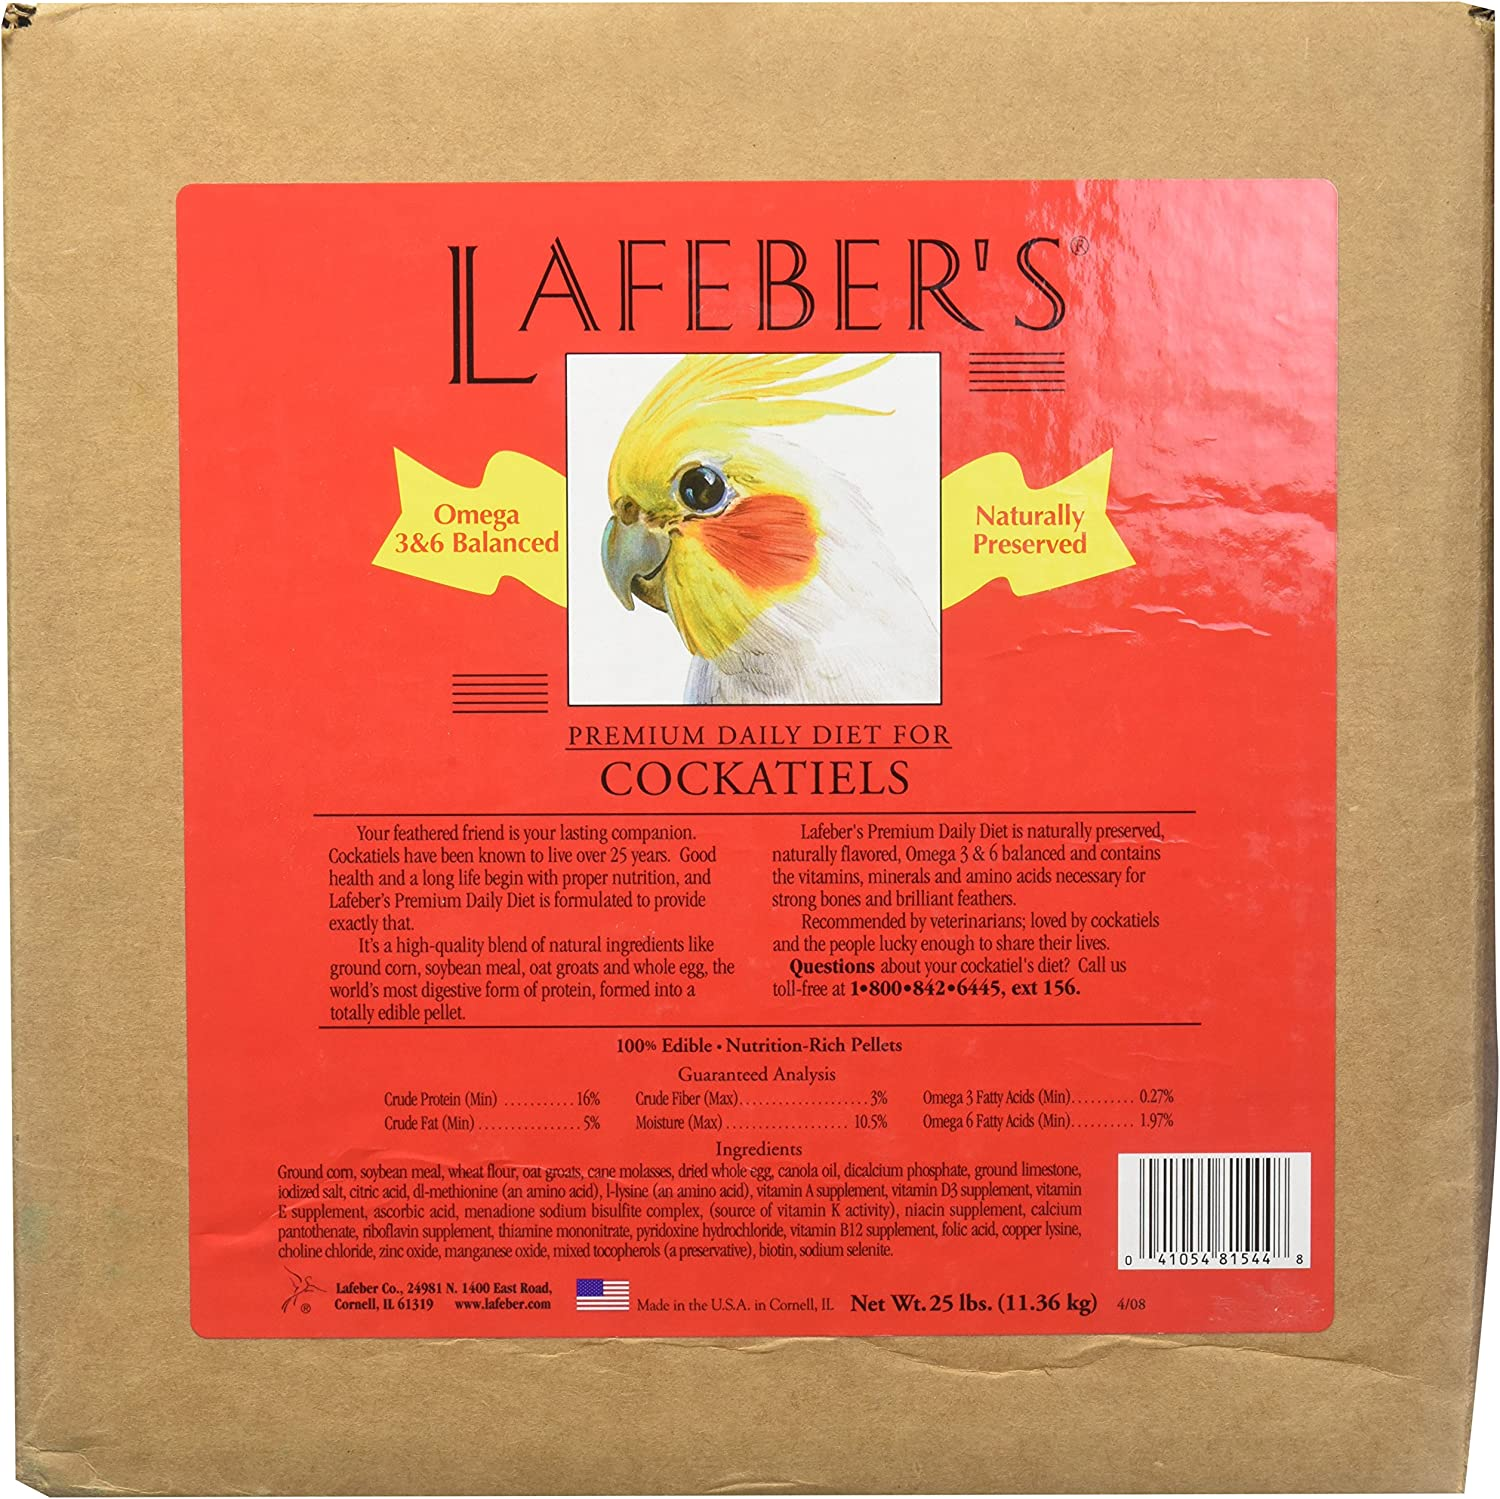 LAFEBER'S Premium Daily Diet Pellets Pet Bird Food, Made with Non-GMO and Human-Grade Ingredients, for Cockatiels, 25 lb